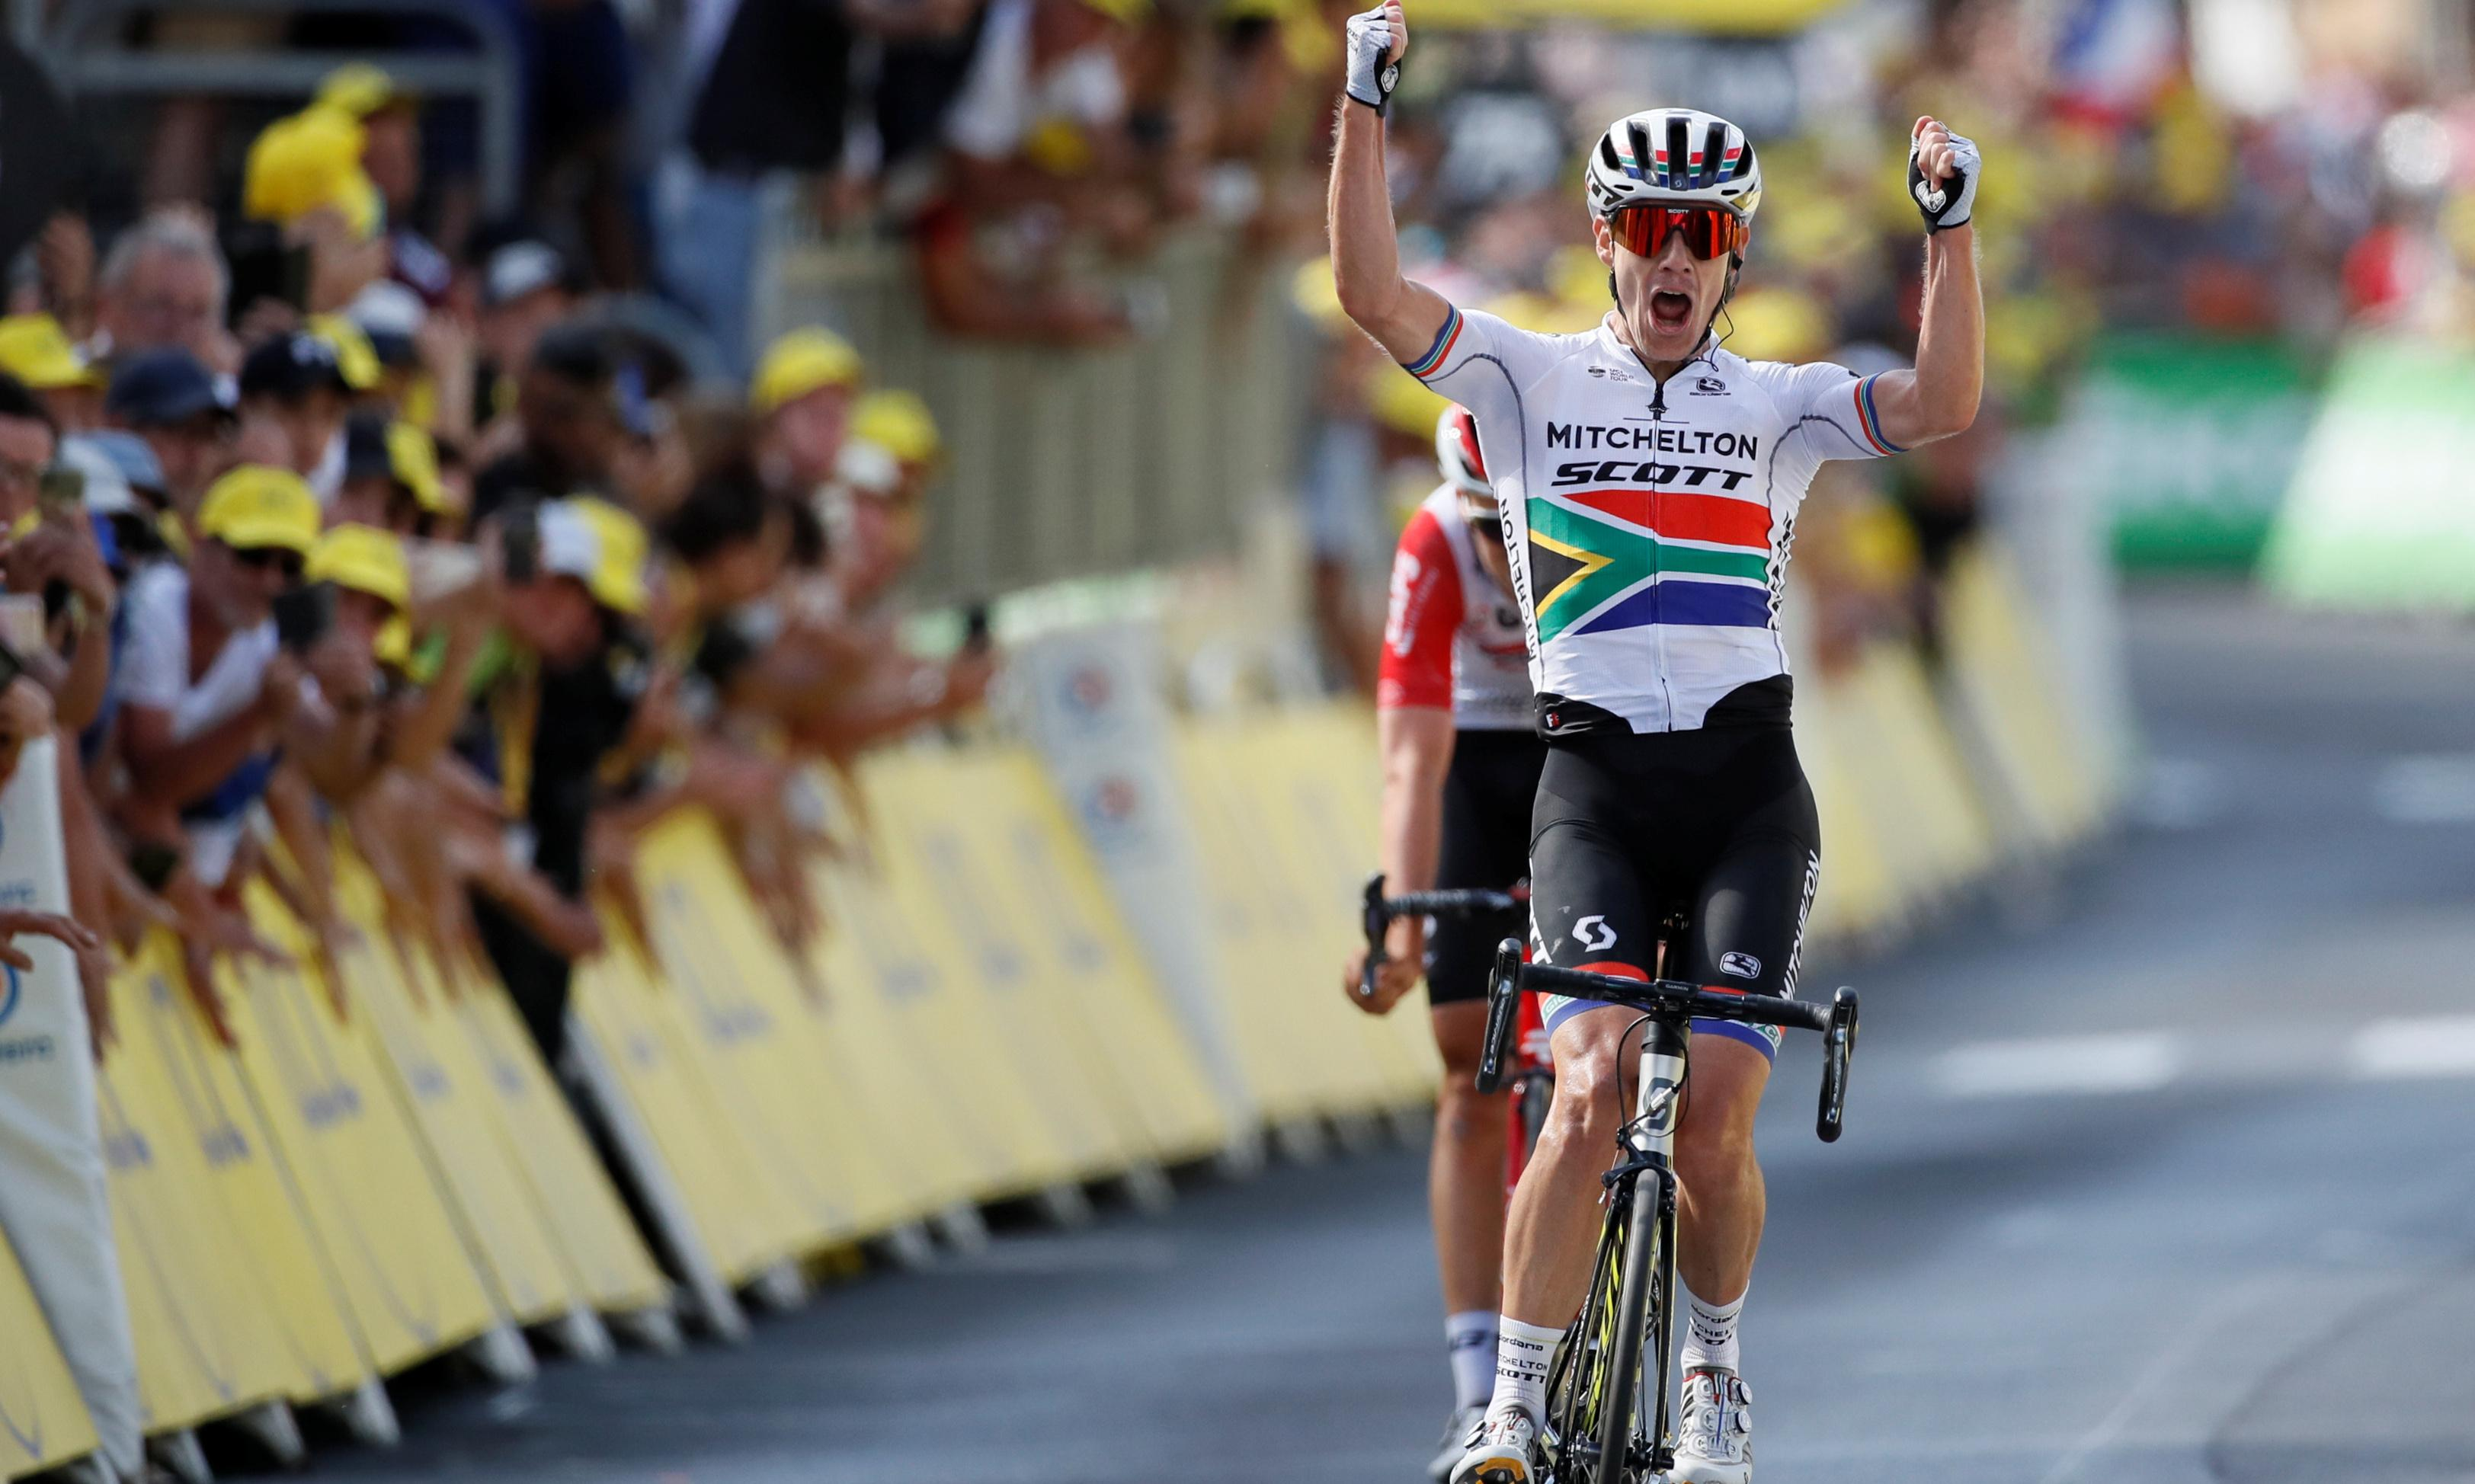 Daryl Impey sprints to Bastille Day victory in Tour de France